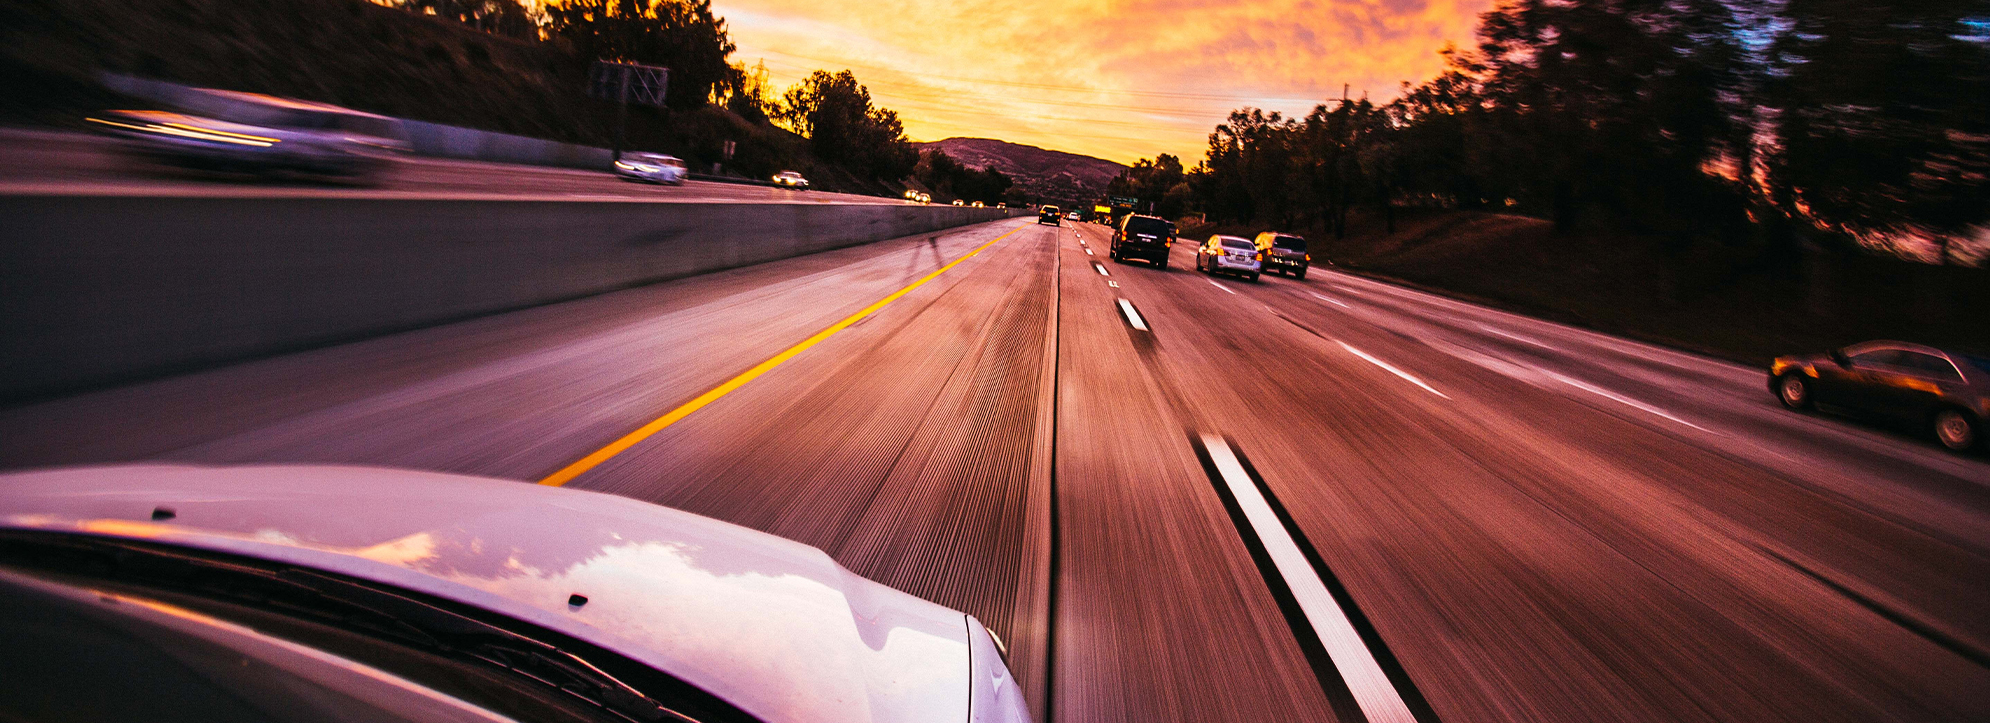 The role of Defensive Driving in Accident Prevention